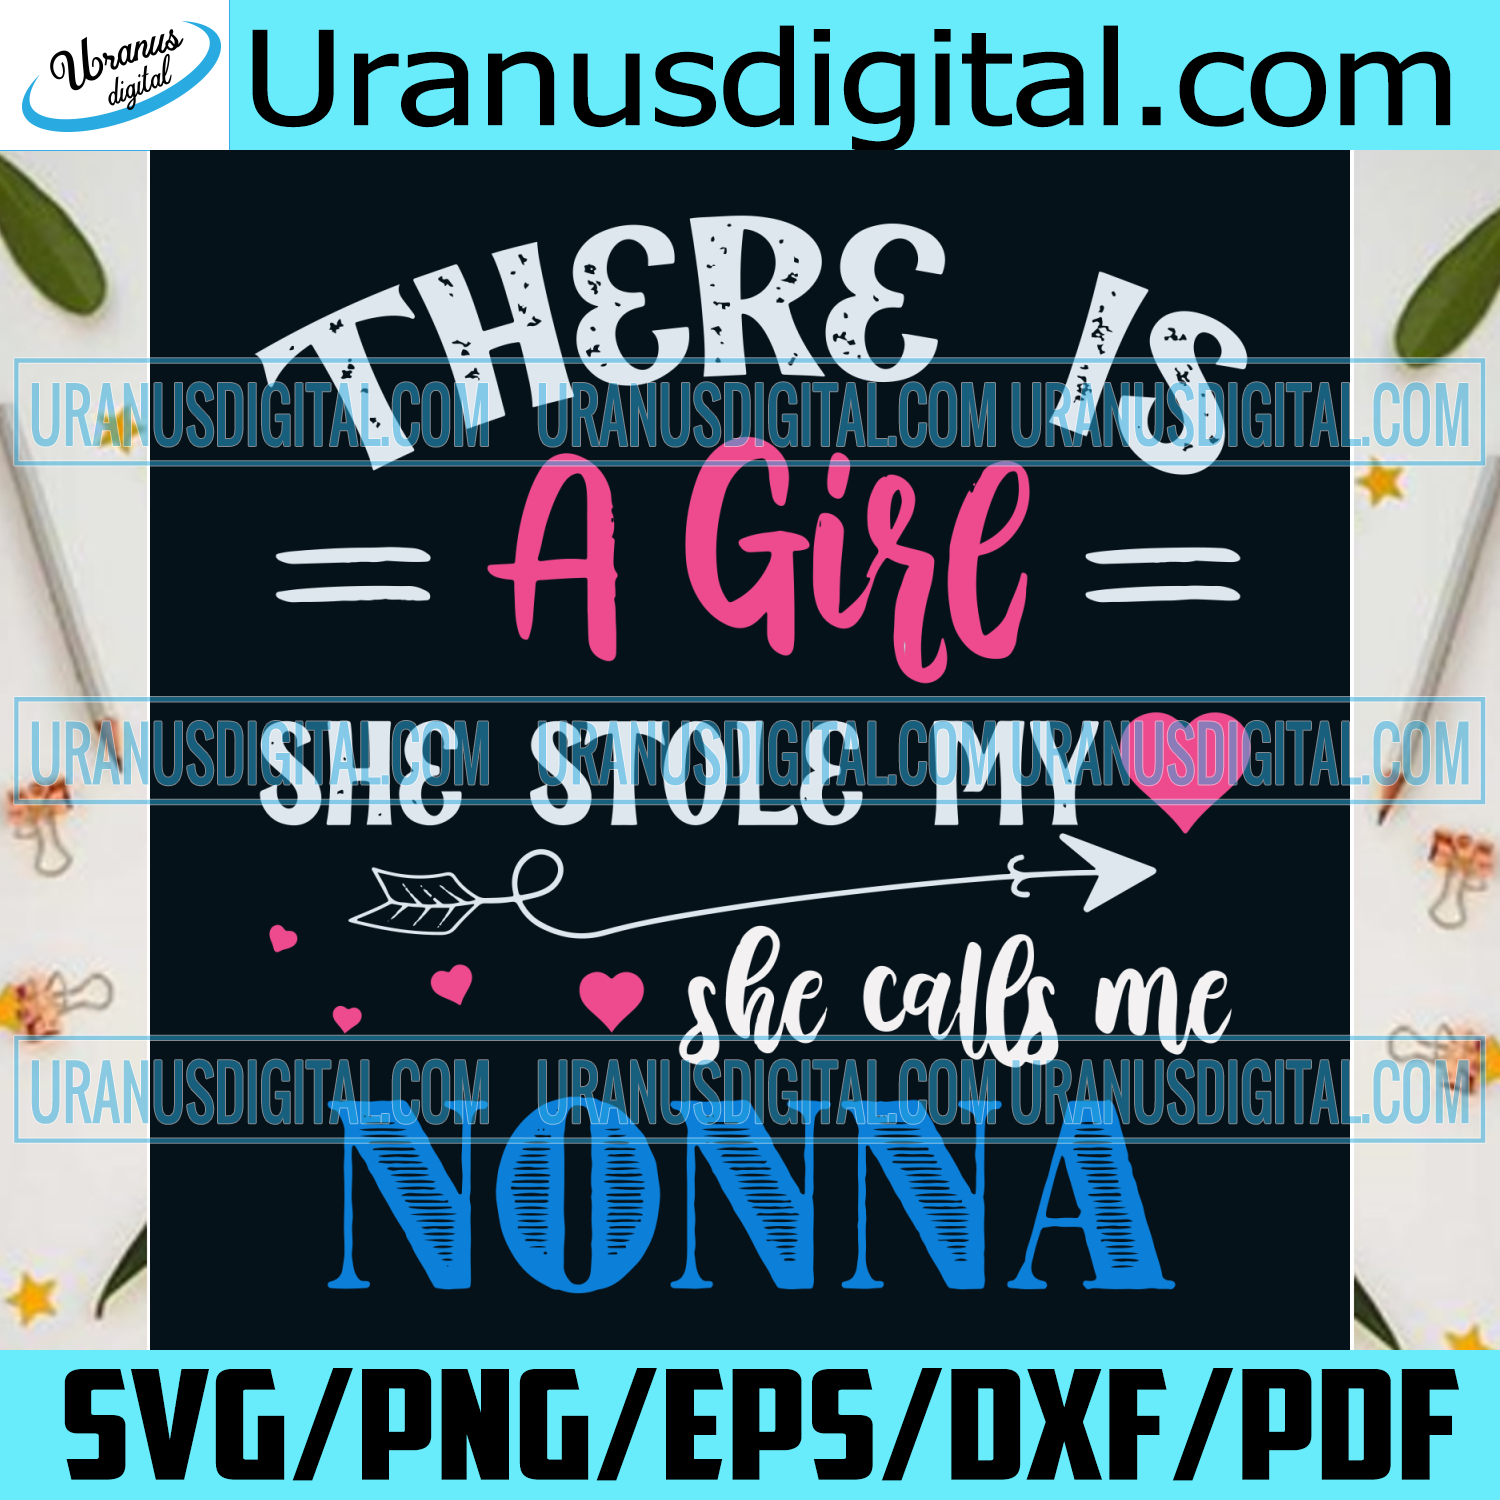 There Is A Girl She Stole My Heart She Calls Me Nonna Svg, Valentine Svg, Valentines Day Svg, Girl Svg, Stole Heart Svg, Nonna Svg, Valentine Gifts, Valentines Hearts Svg, Happy Valentines Day, Svg Clipart, Silhouette Svg, Cricut Svg Files